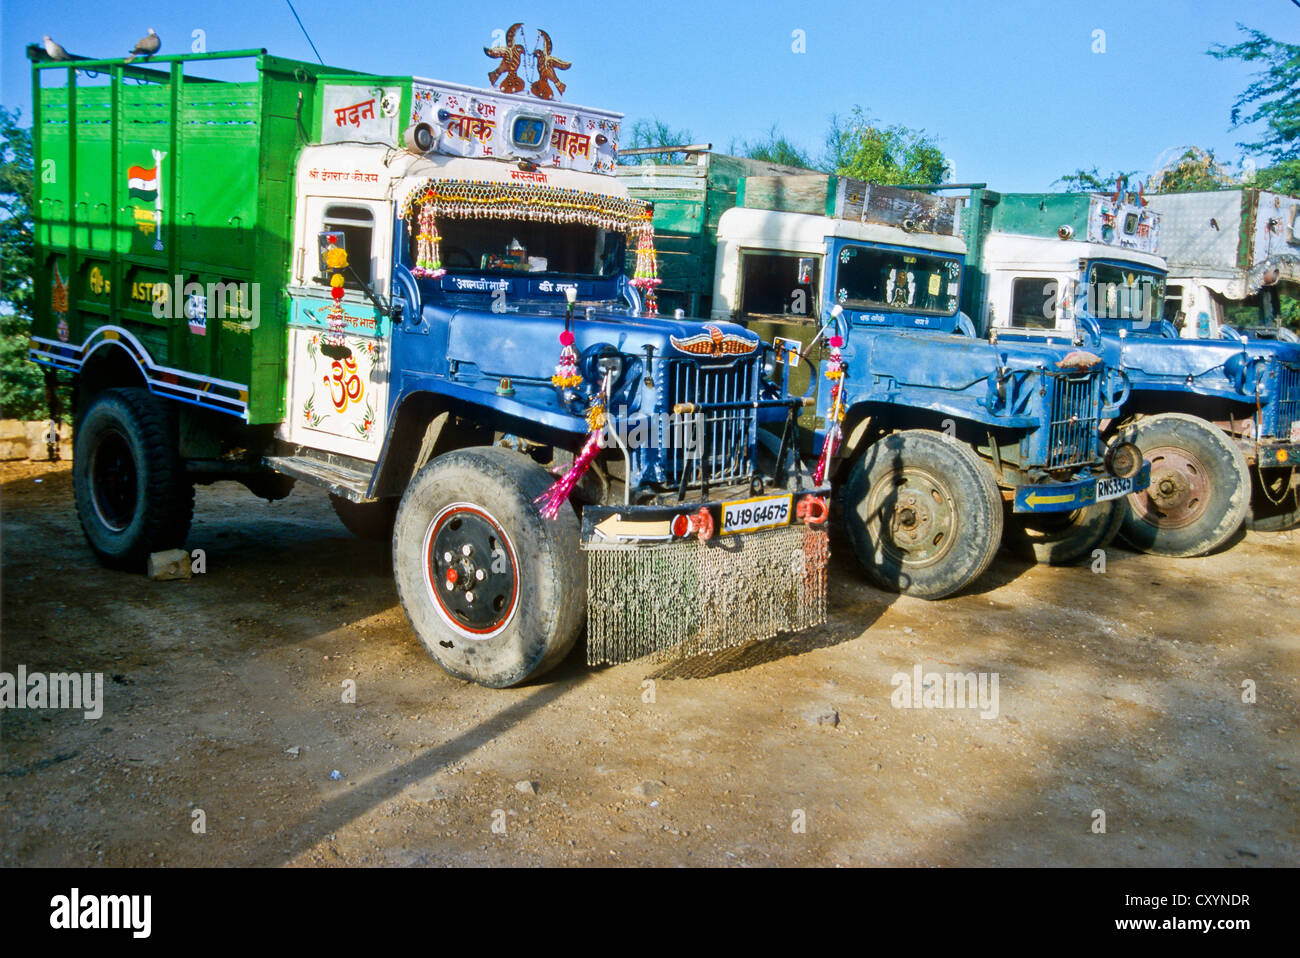 Old trucks used for transportation in rural areas, Bhuj, India ...